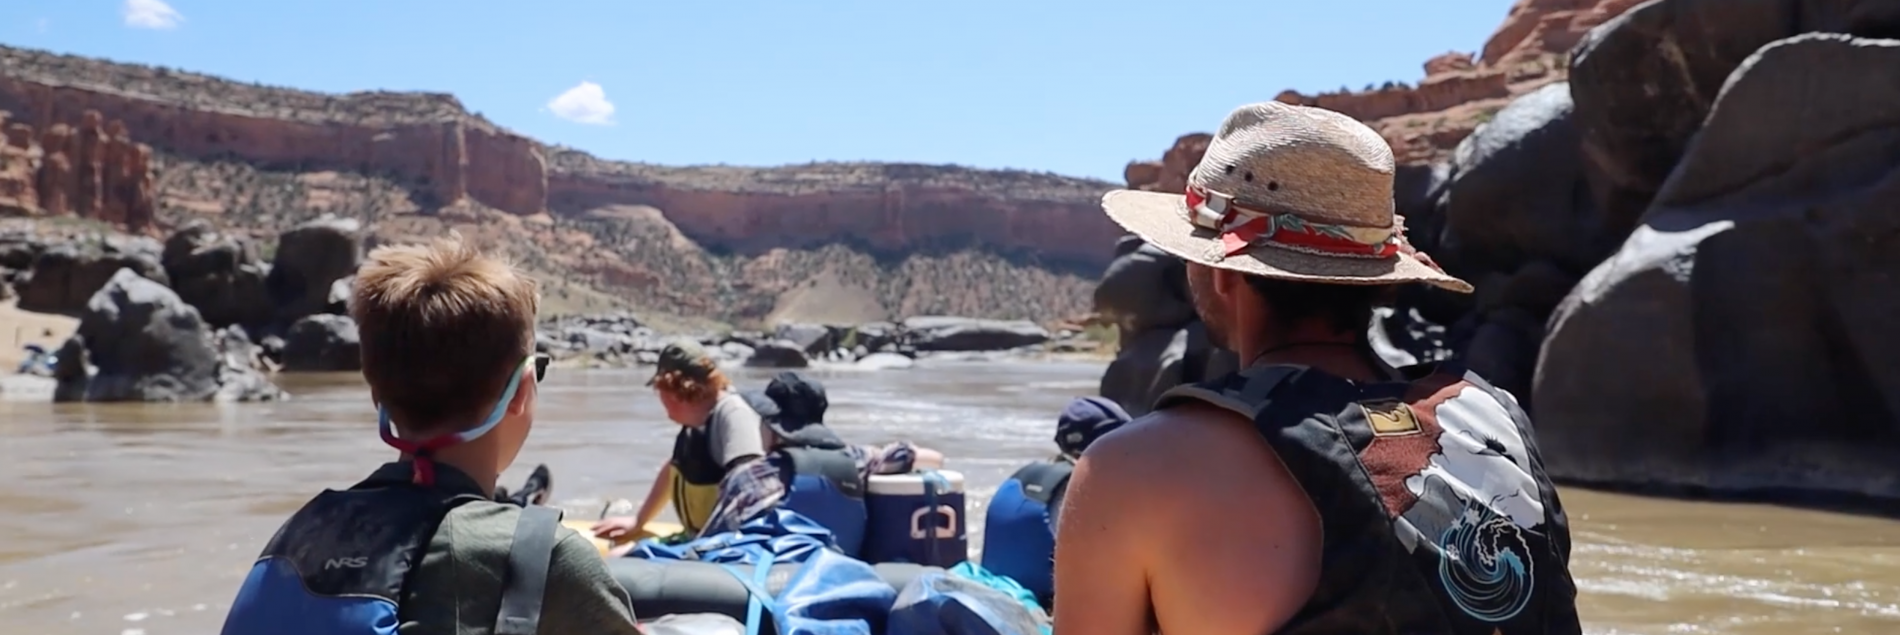 students rafting down the colorado river on a STEM trip